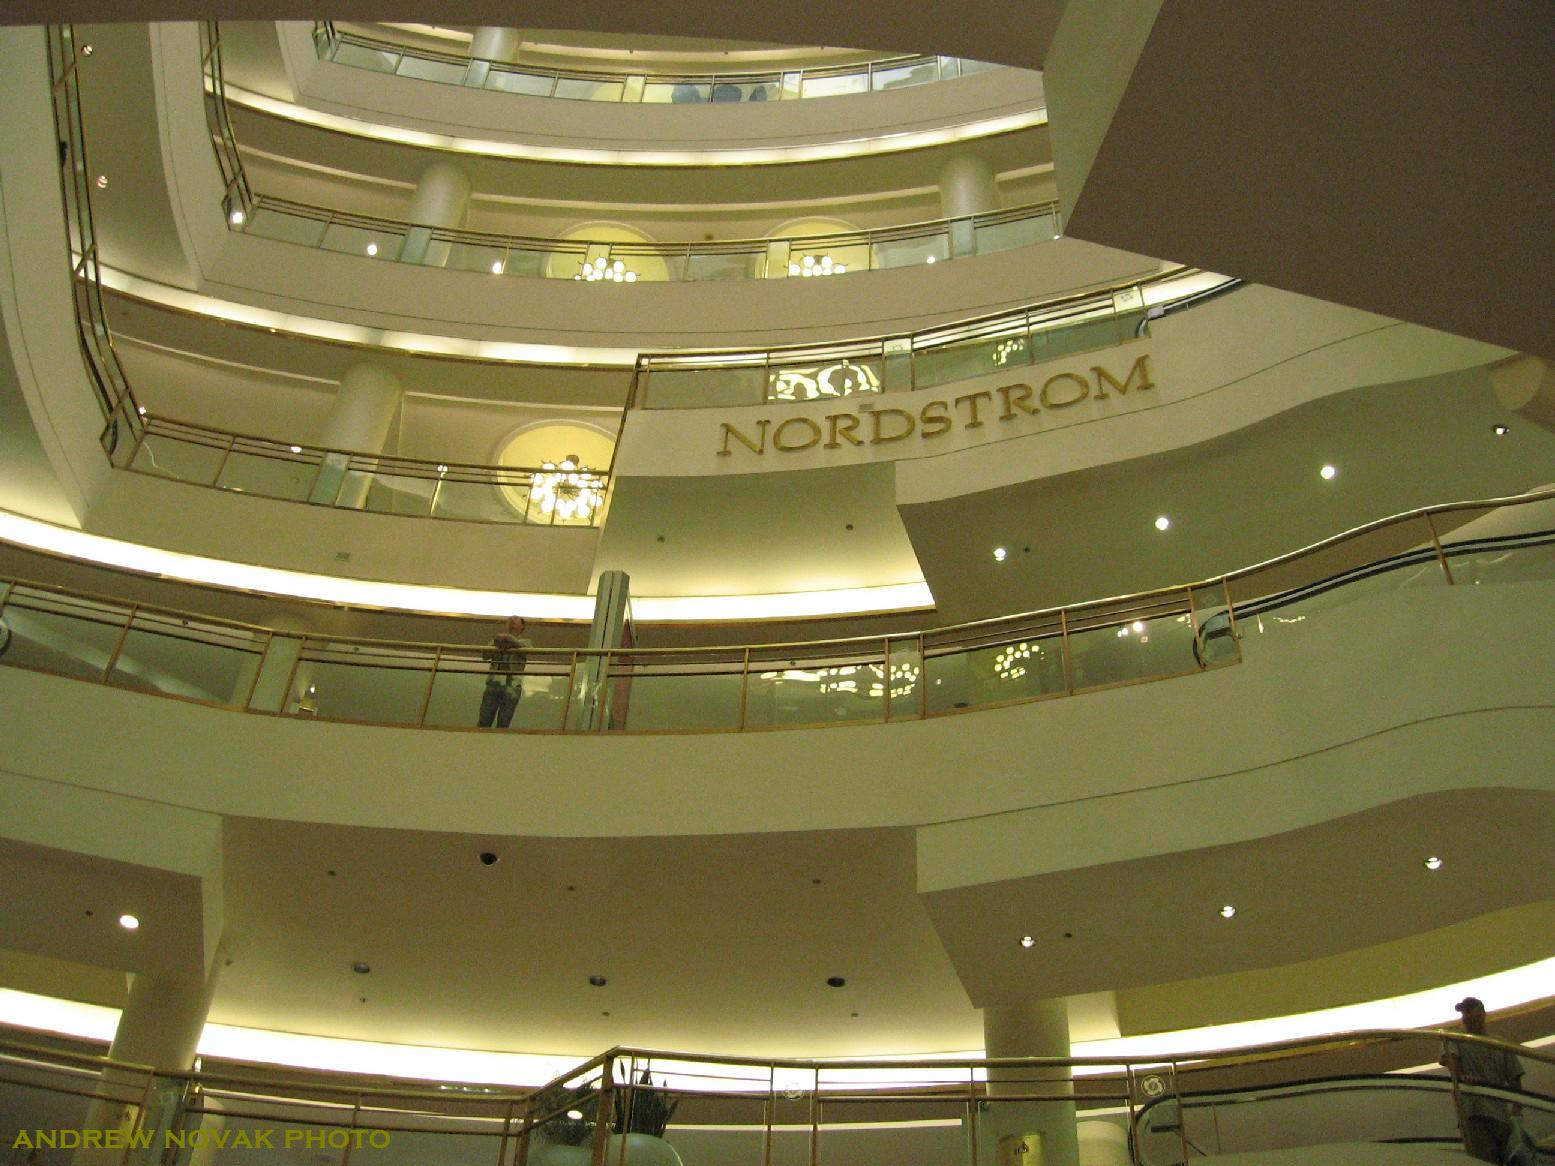 Nordstrom Interior of the Nordstrom store on August 7, 2007 (Andrew ...